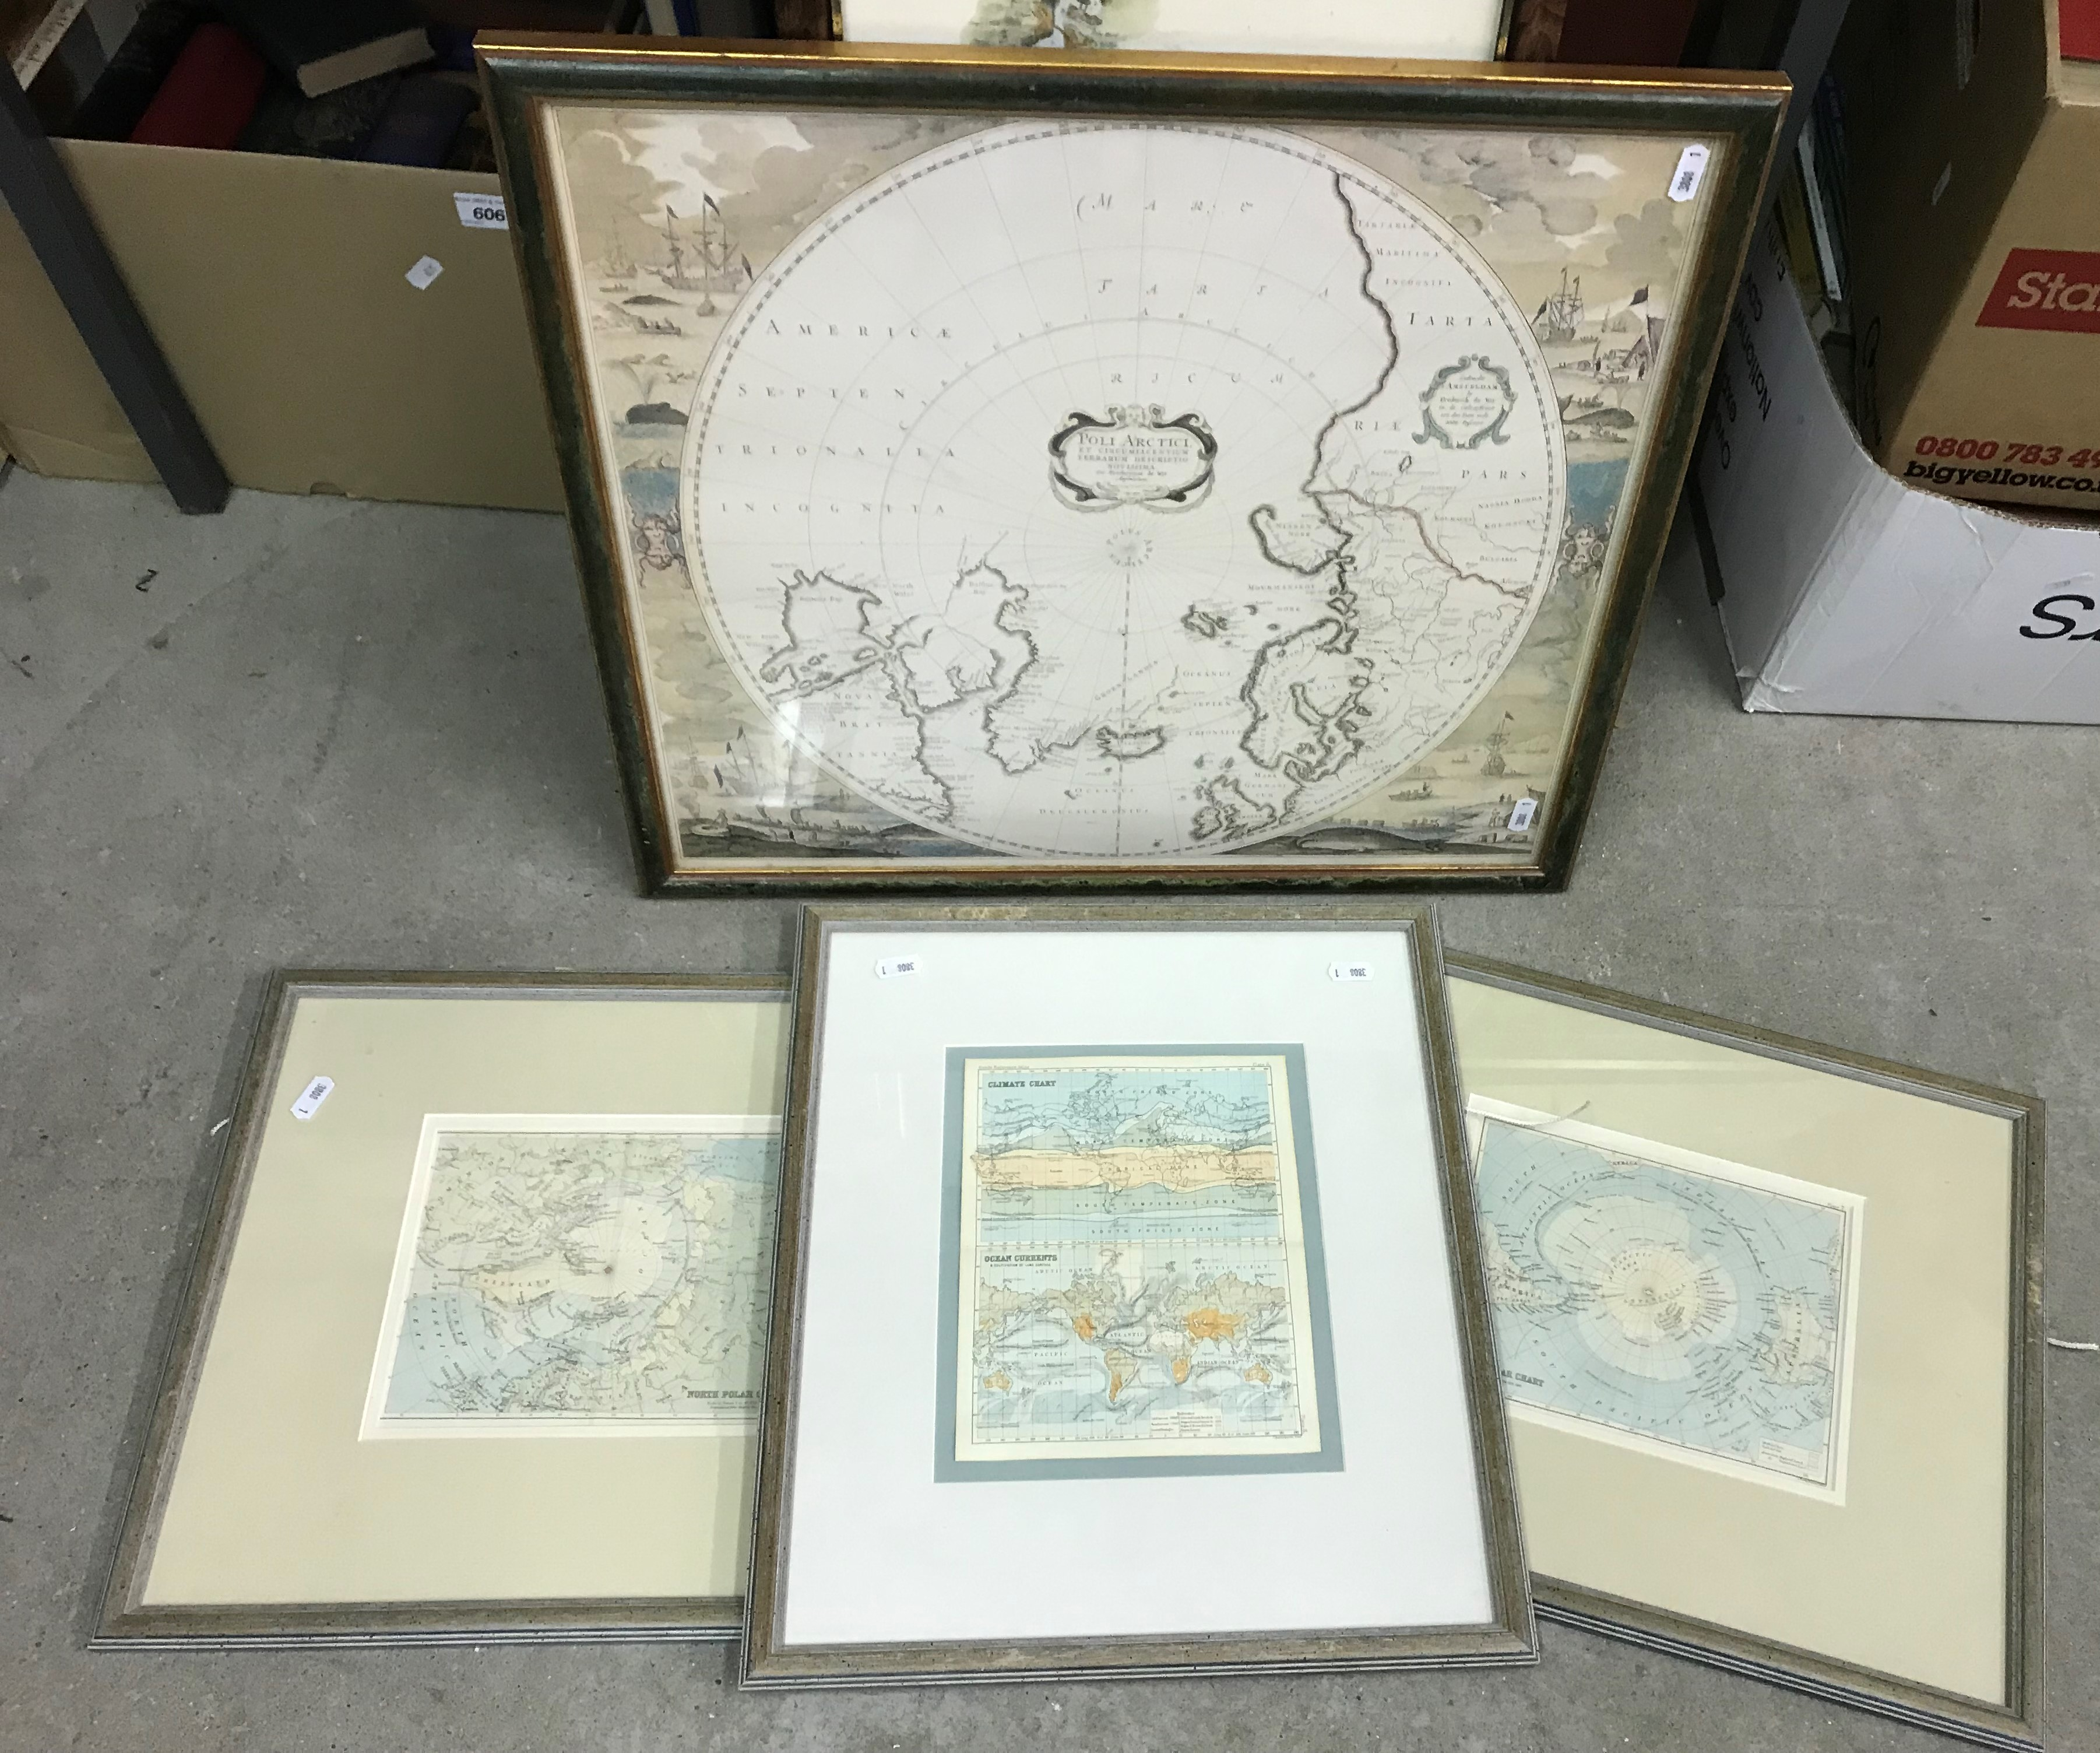 """AFTER J RAPKIN """"Falkland Islands and Patagonia"""" a map, visible image 35.5 cm x 25.5 cm, together - Image 4 of 4"""